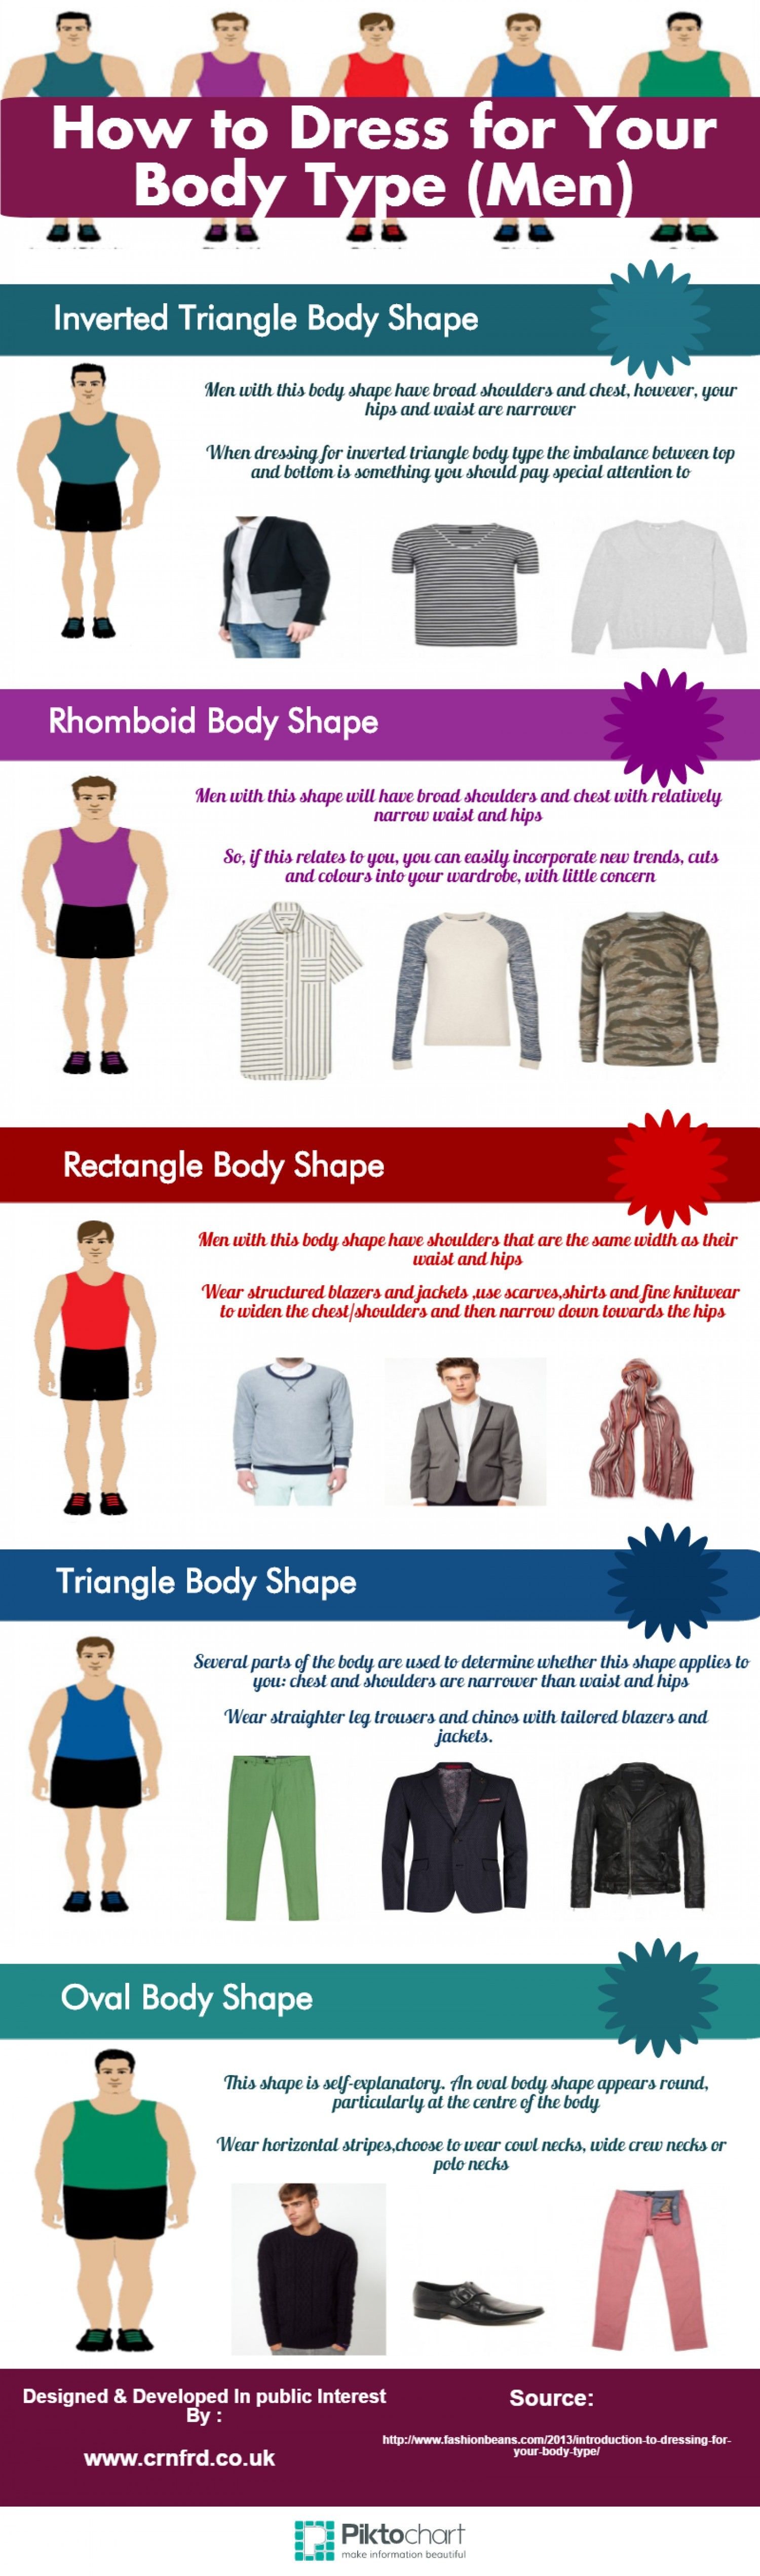 How To Dress For Your Body Type Men Shared By Crnfrduk On Sep 09 2014 See More At Http